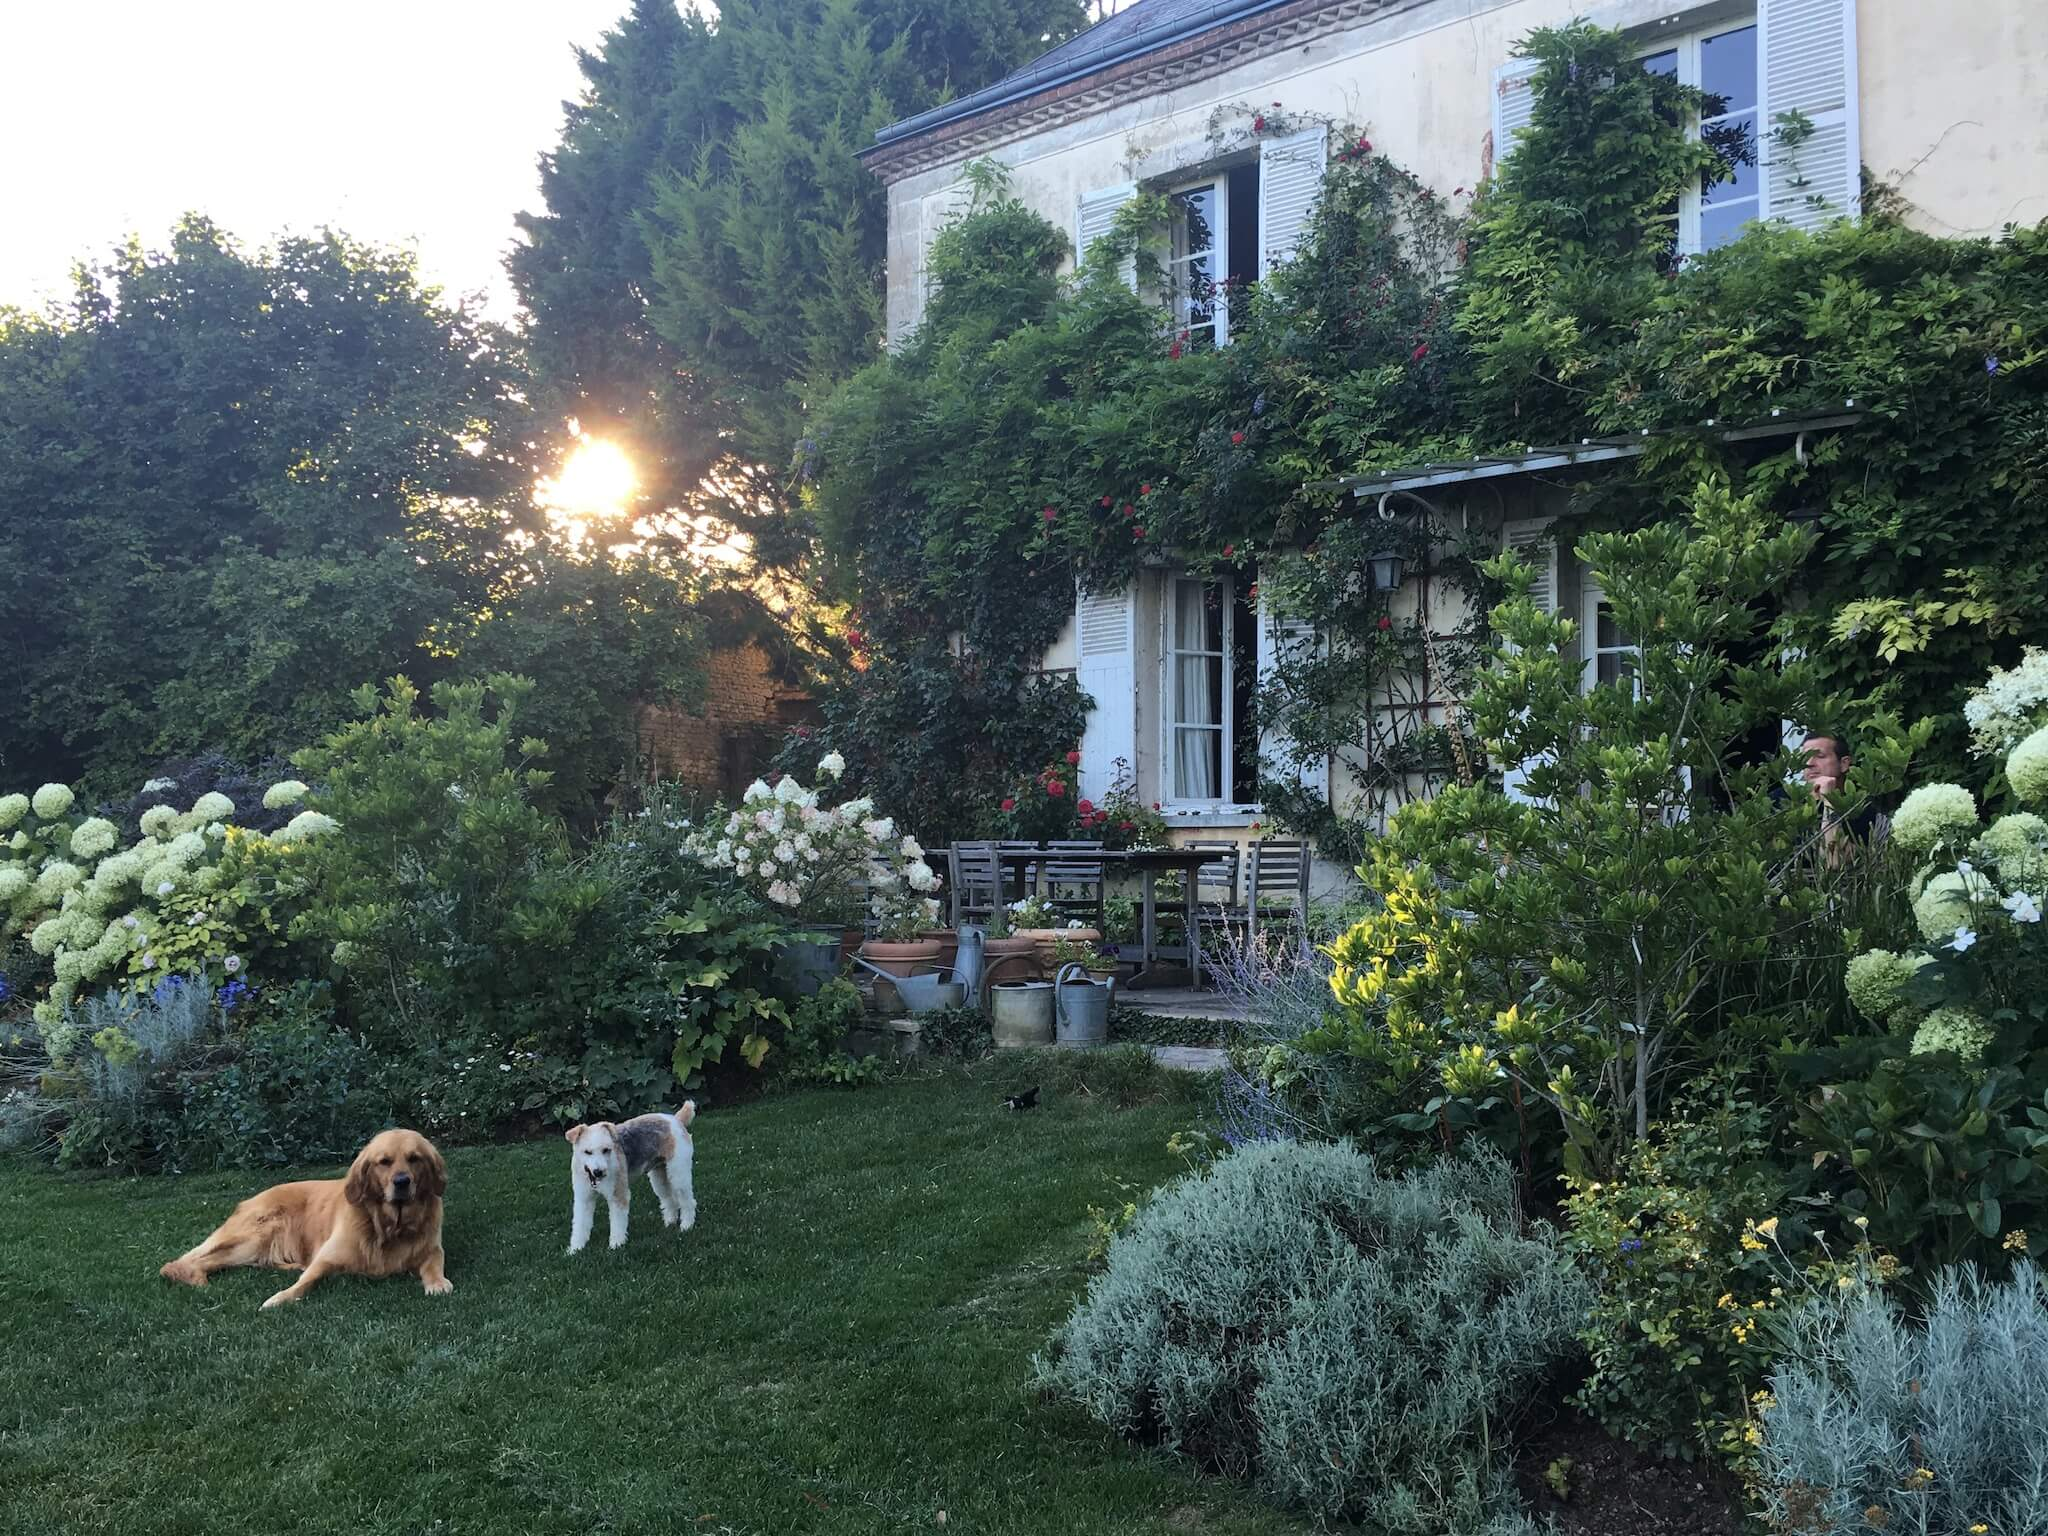 A French home covered in green leafy plants and two dogs in the gardens with the sun set behind.